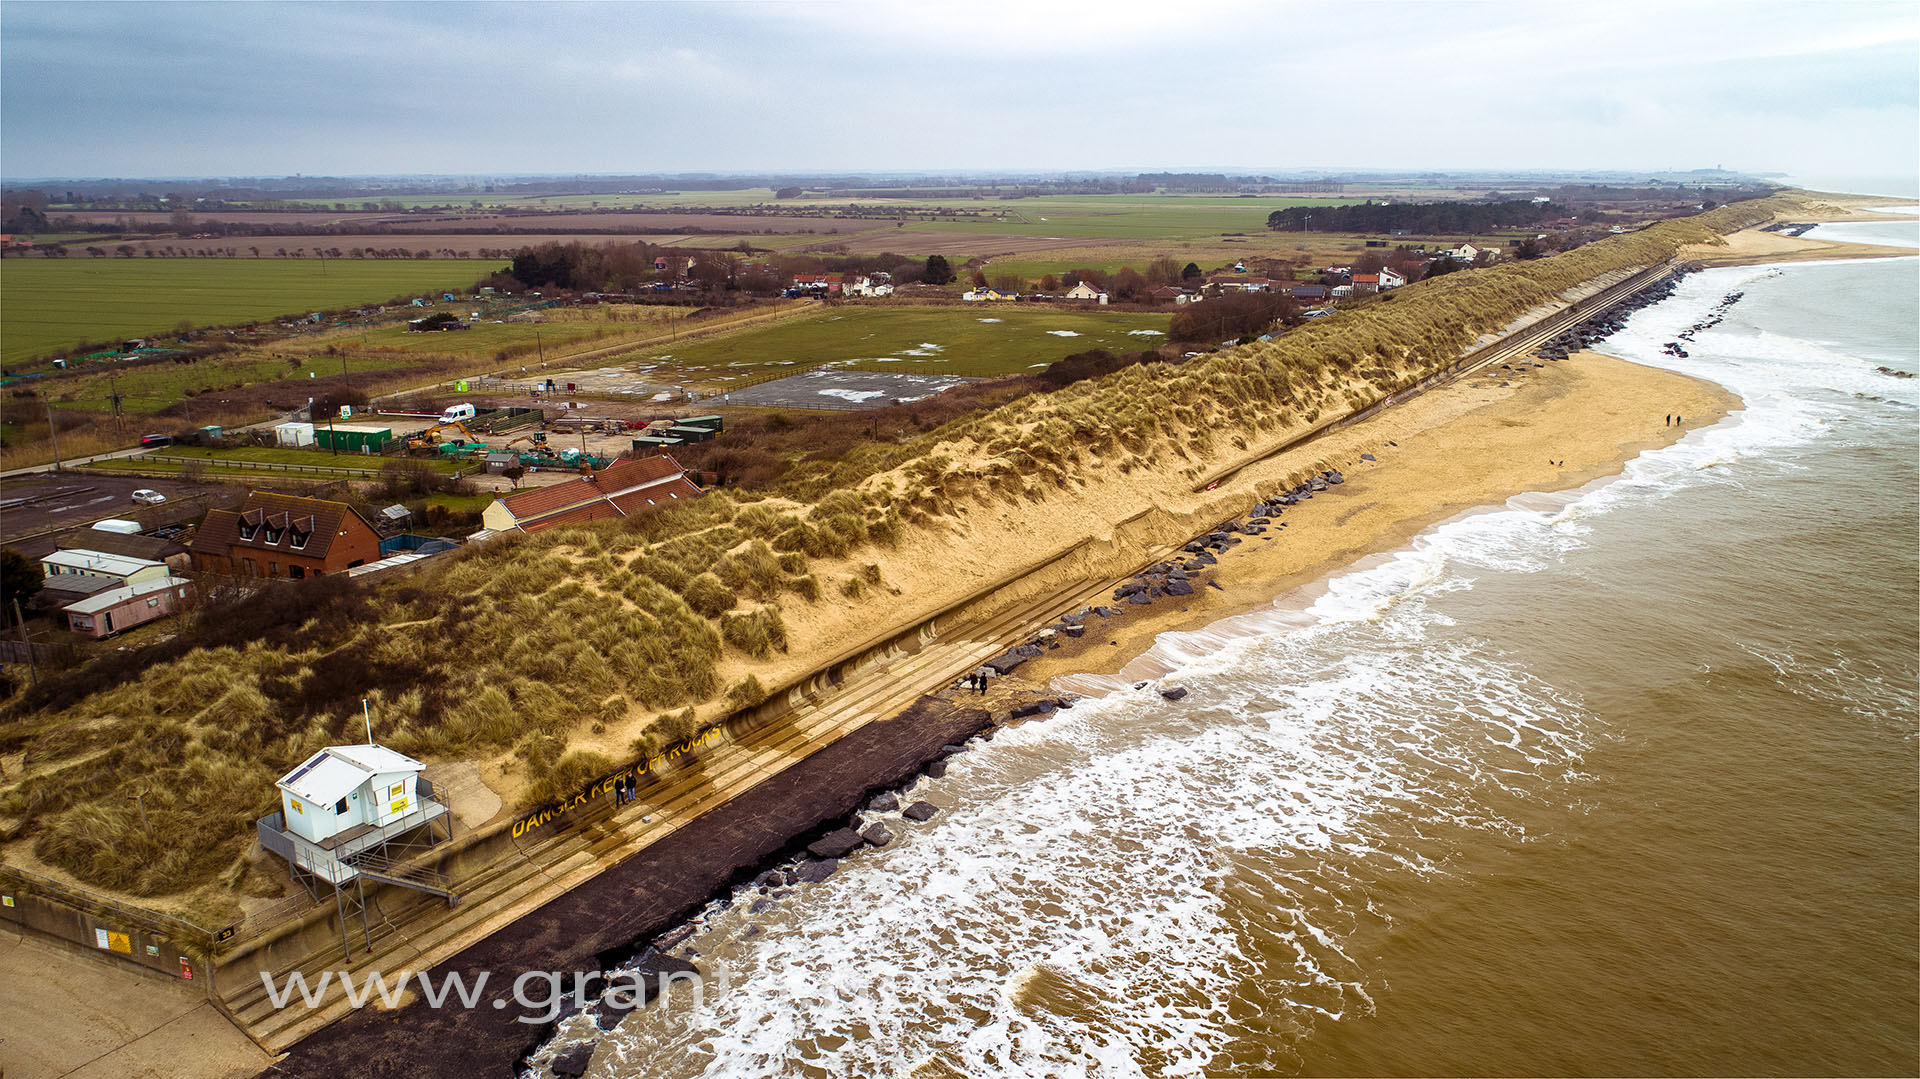 Drone photo of Sea Palling beach, in Norfolk following heavy spring storms in 2018